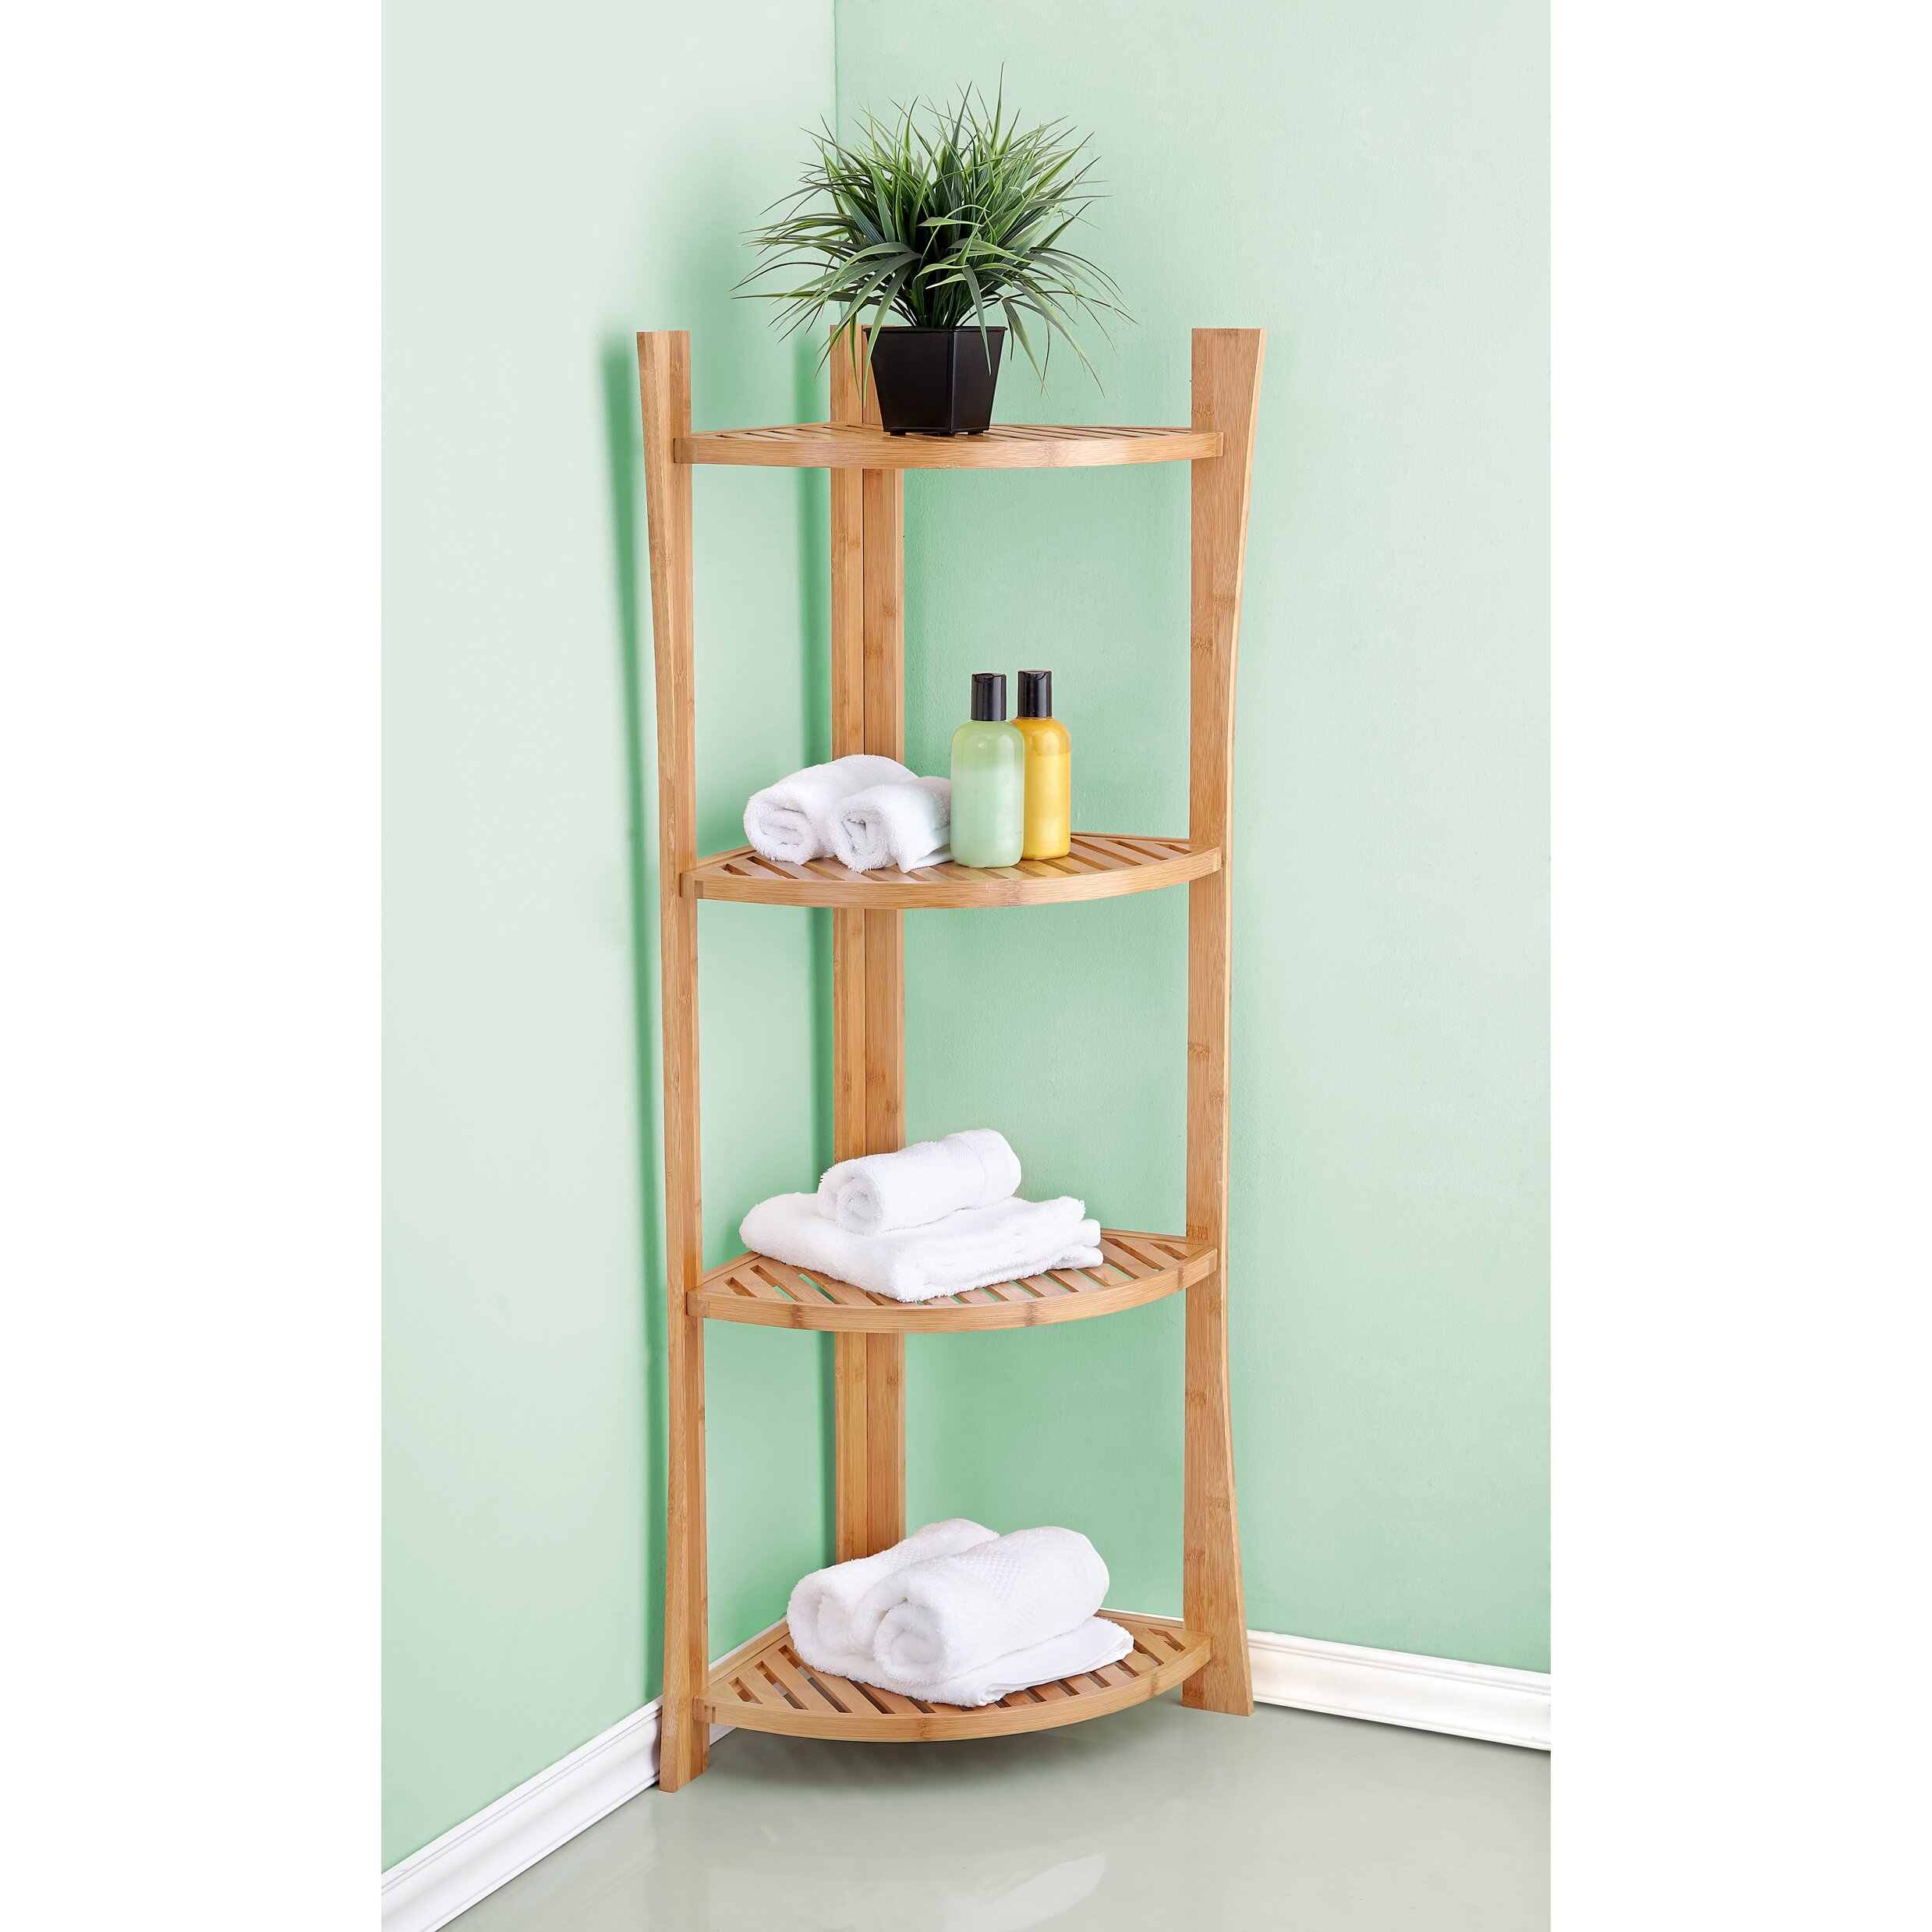 Bathroom Shelf Fox Hill Trading Bamboo Corner 15 W X 45 H Bathroom Shelf